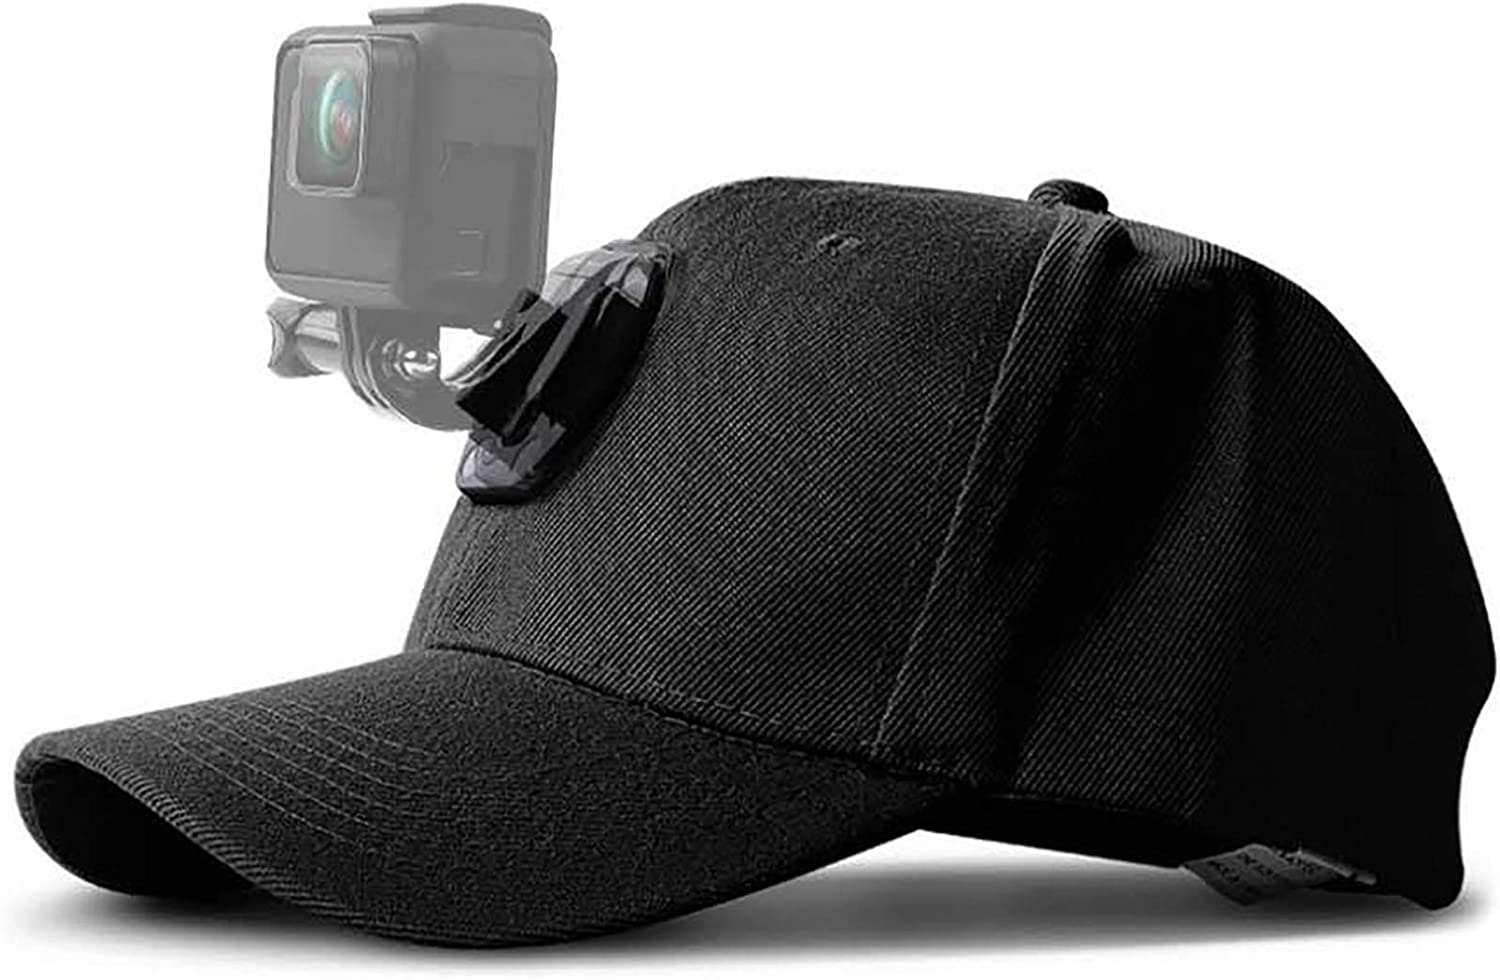 ROCAPRAW Action Cameras Head Mount Outlet ☆ Free Shipping National uniform free shipping Buckle Release with Quick Hat